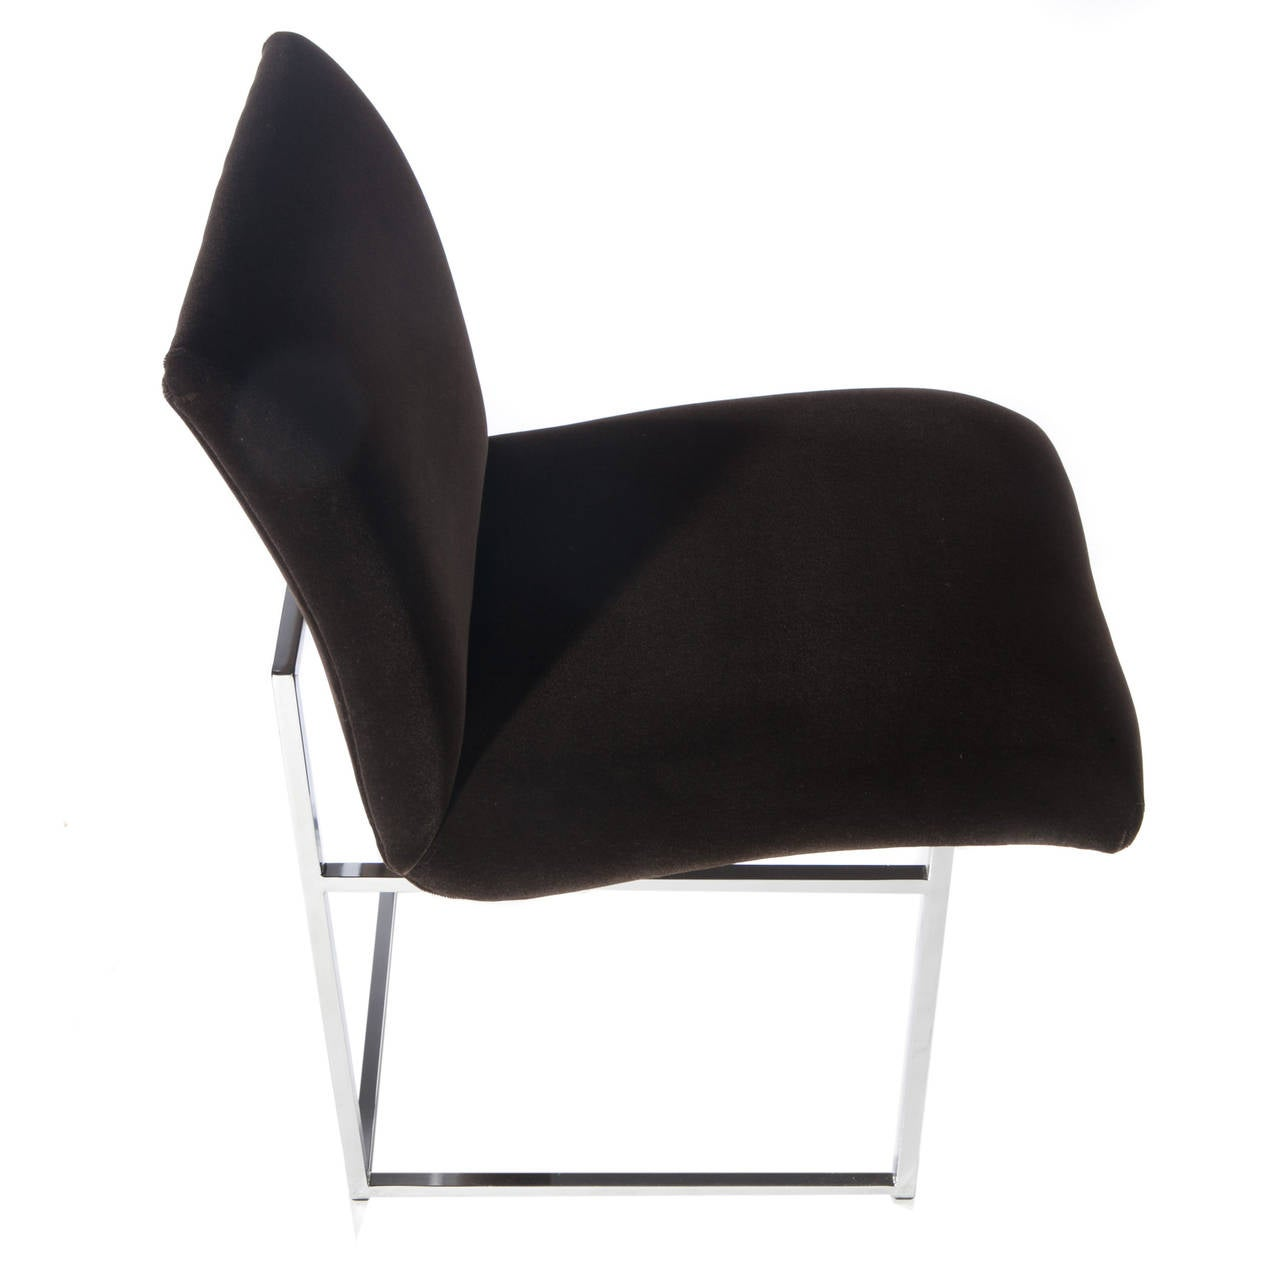 American Set of Four Chrome and Mohair Dining Chairs by Milo Baughman, Circa 1970s For Sale